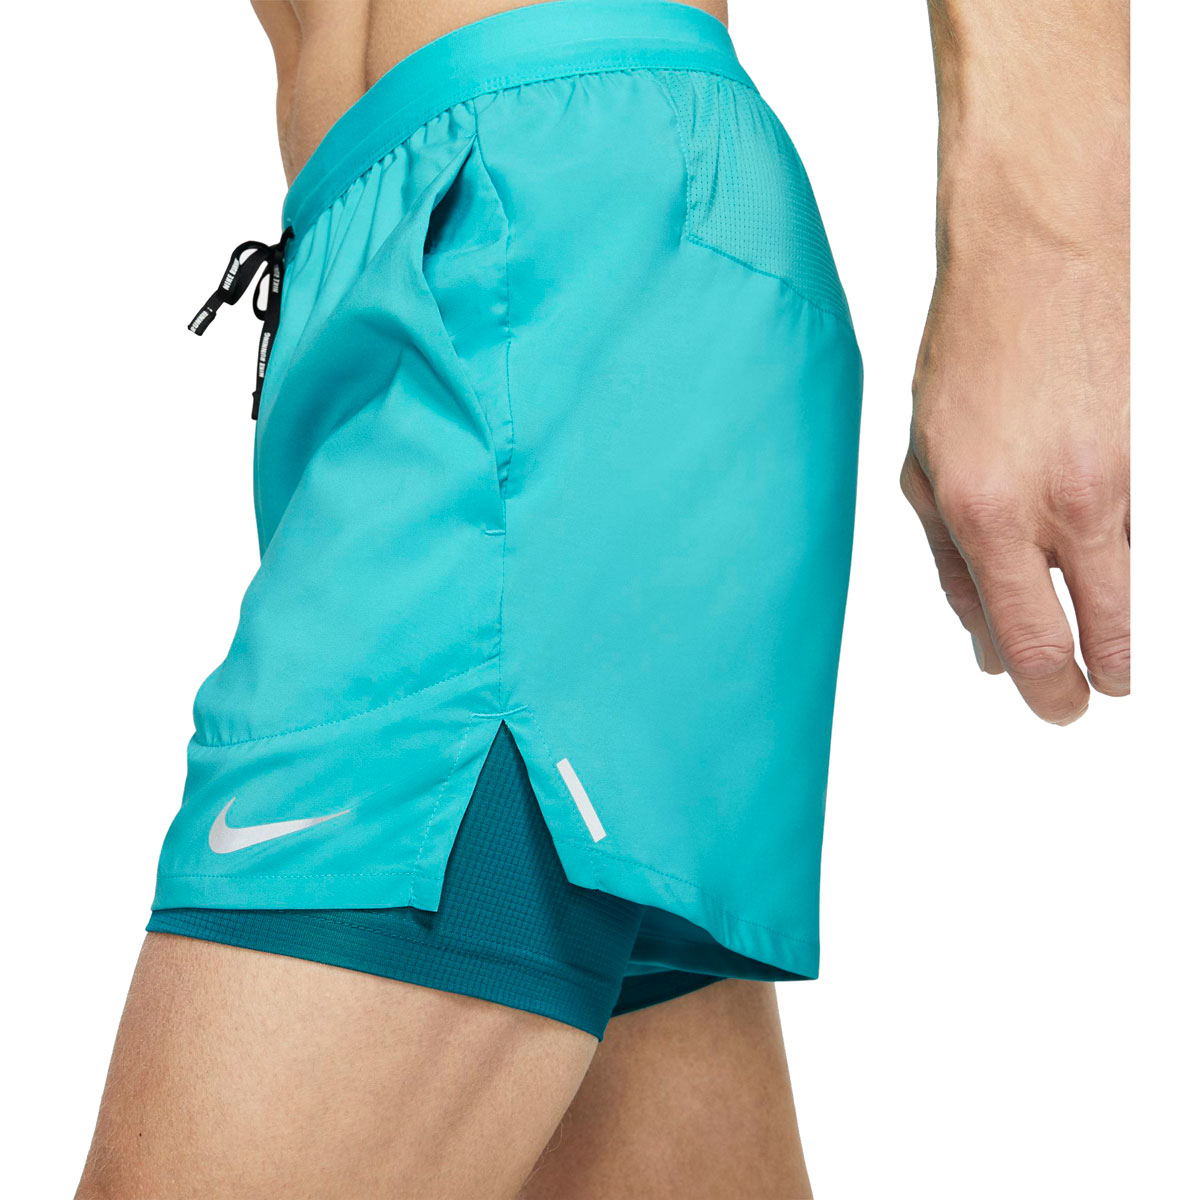 "Men's Nike Flex Stride 5"" 2-In-1 Running Shorts - Color: Oracle Aqua/Reflective Silver - Size: S, Oracle Aqua/Reflective Silver, large, image 3"